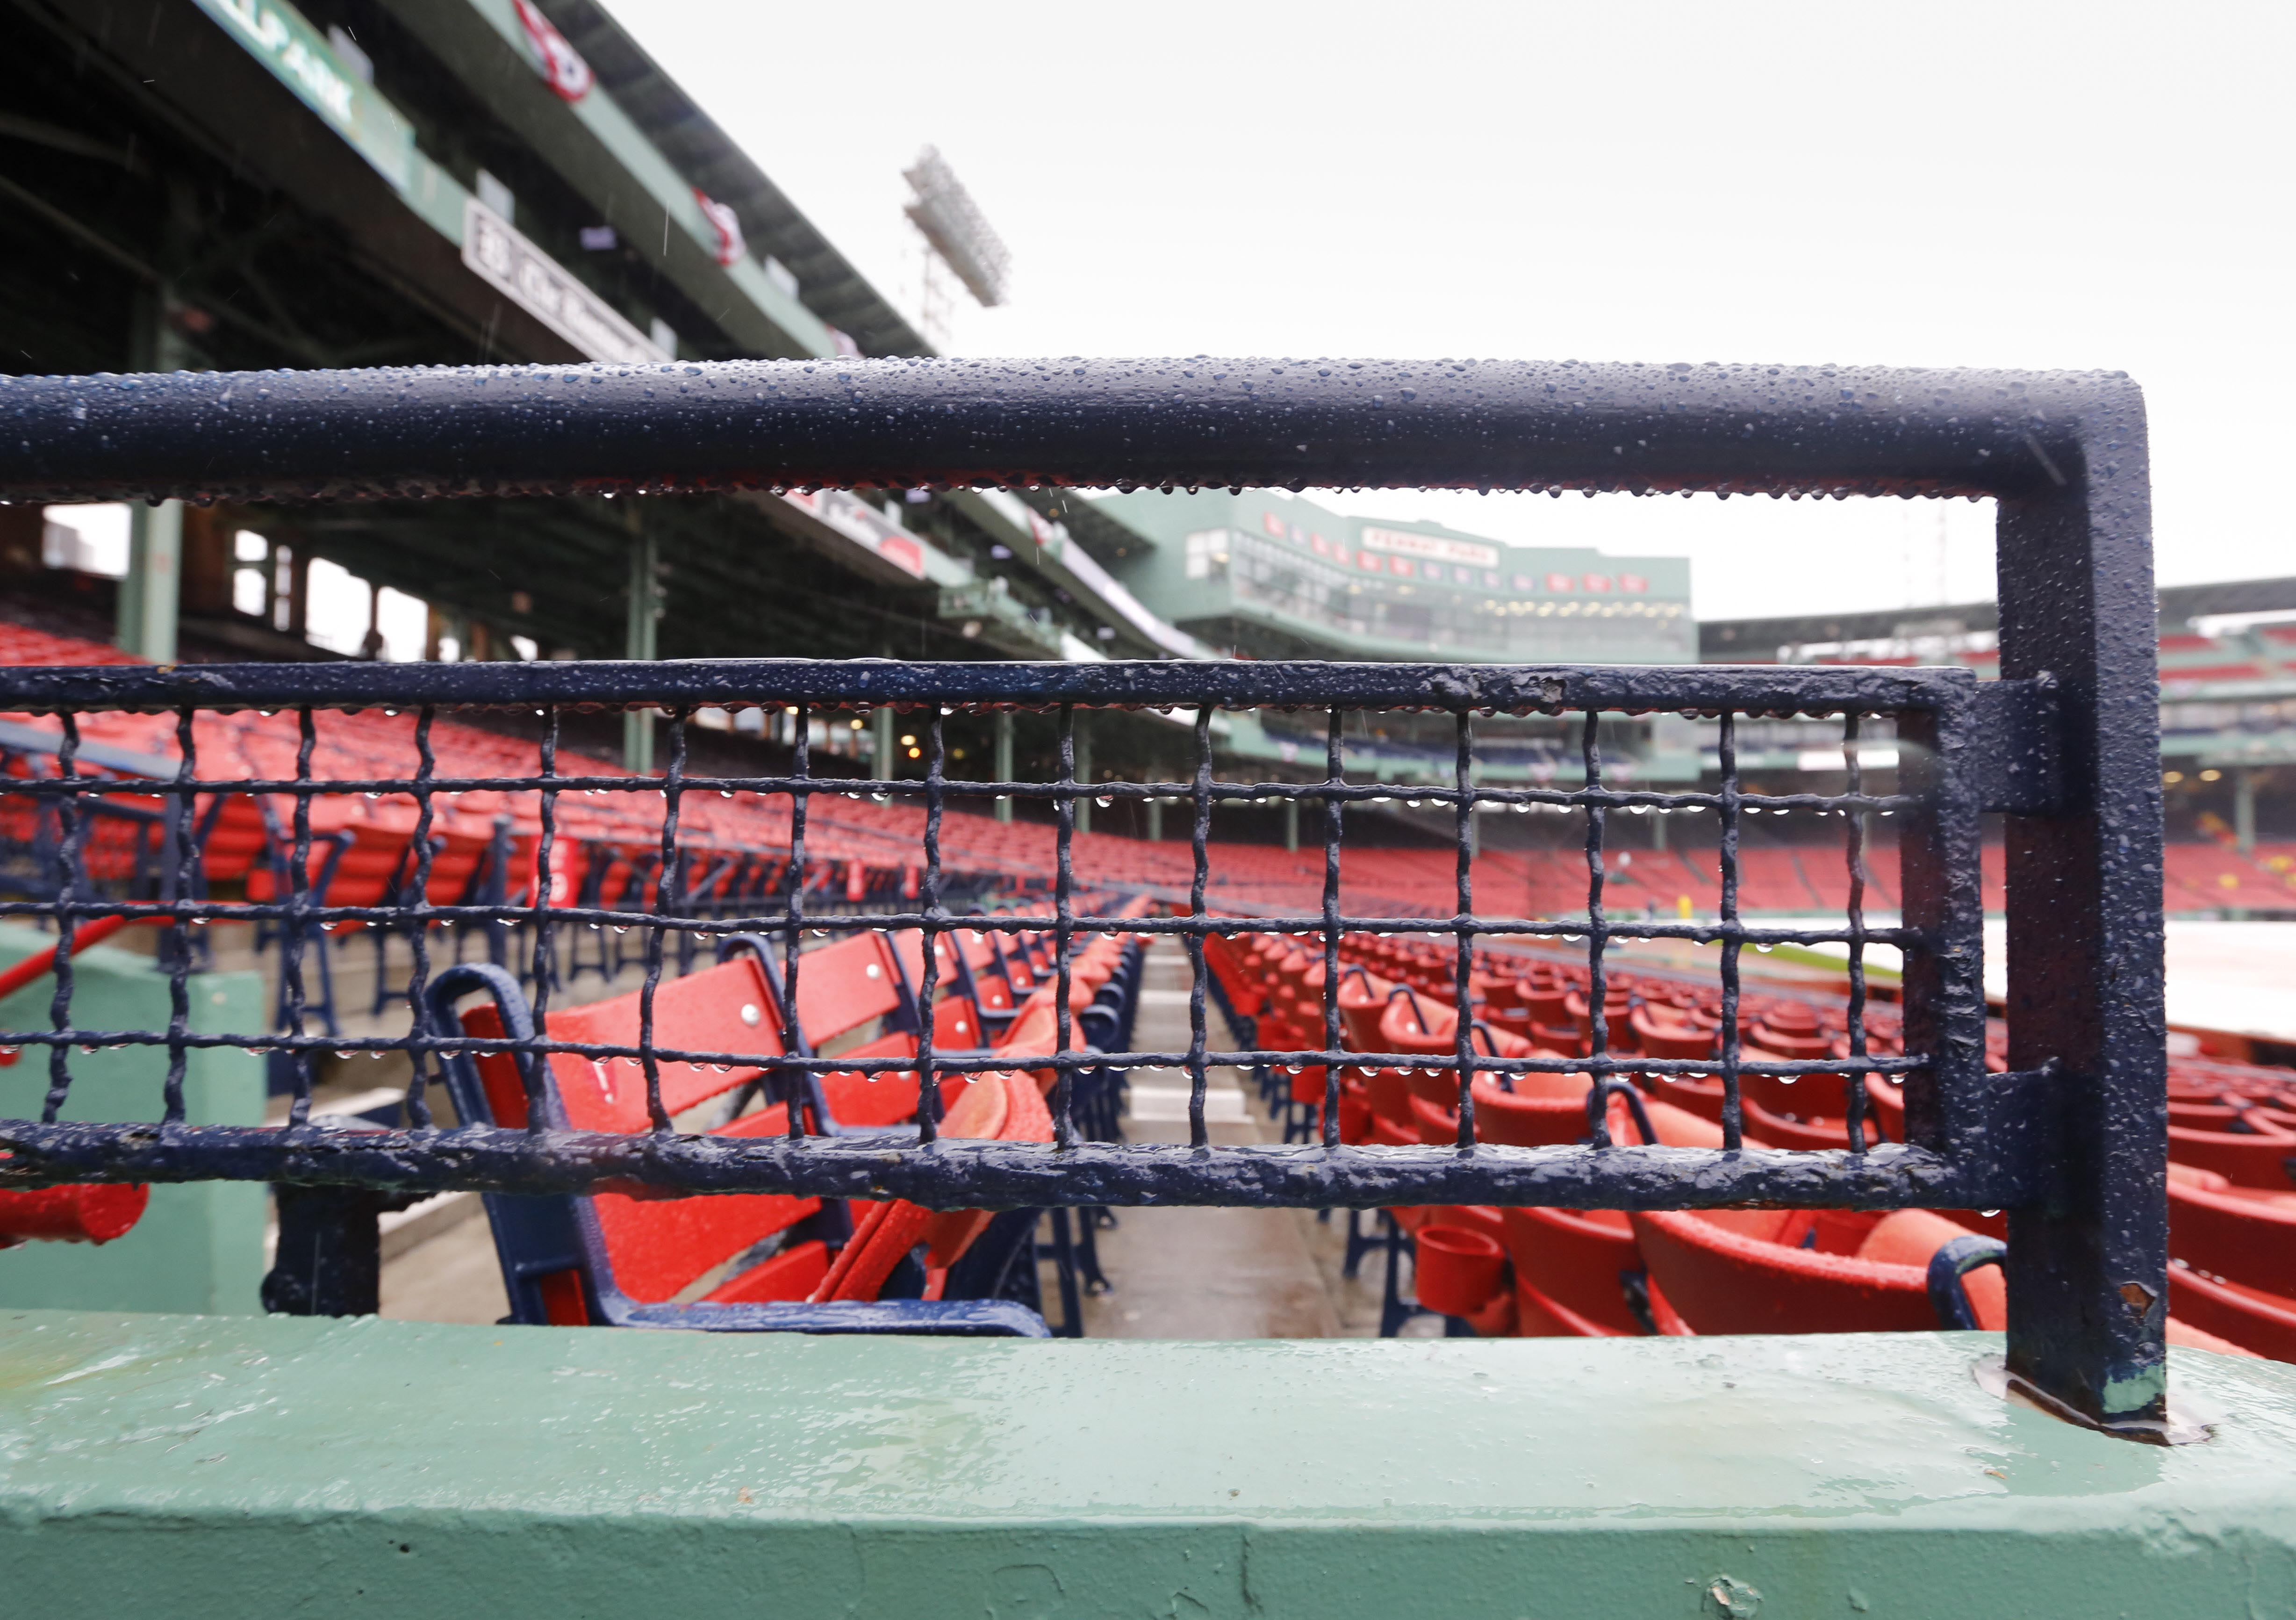 9598221-mlb-alds-cleveland-indians-at-boston-red-sox